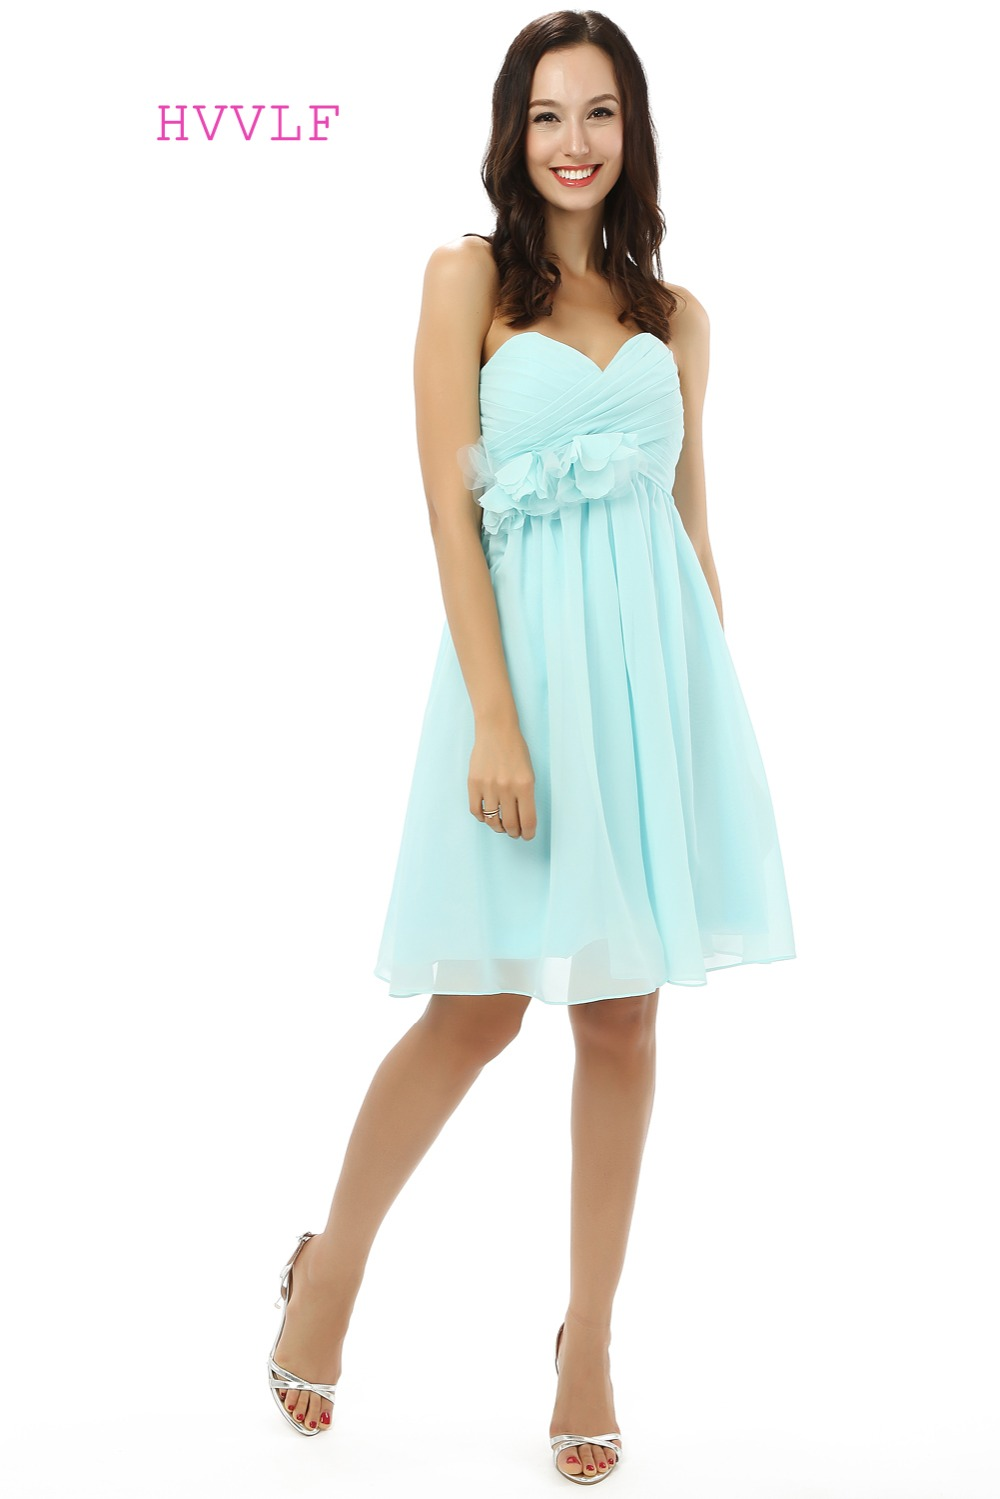 Online buy wholesale bridesmaids turquoise dresses from china turquoise 2017 cheap bridesmaid dresses under 50 a line sweetheart short mini chiffon flowers backless ombrellifo Gallery